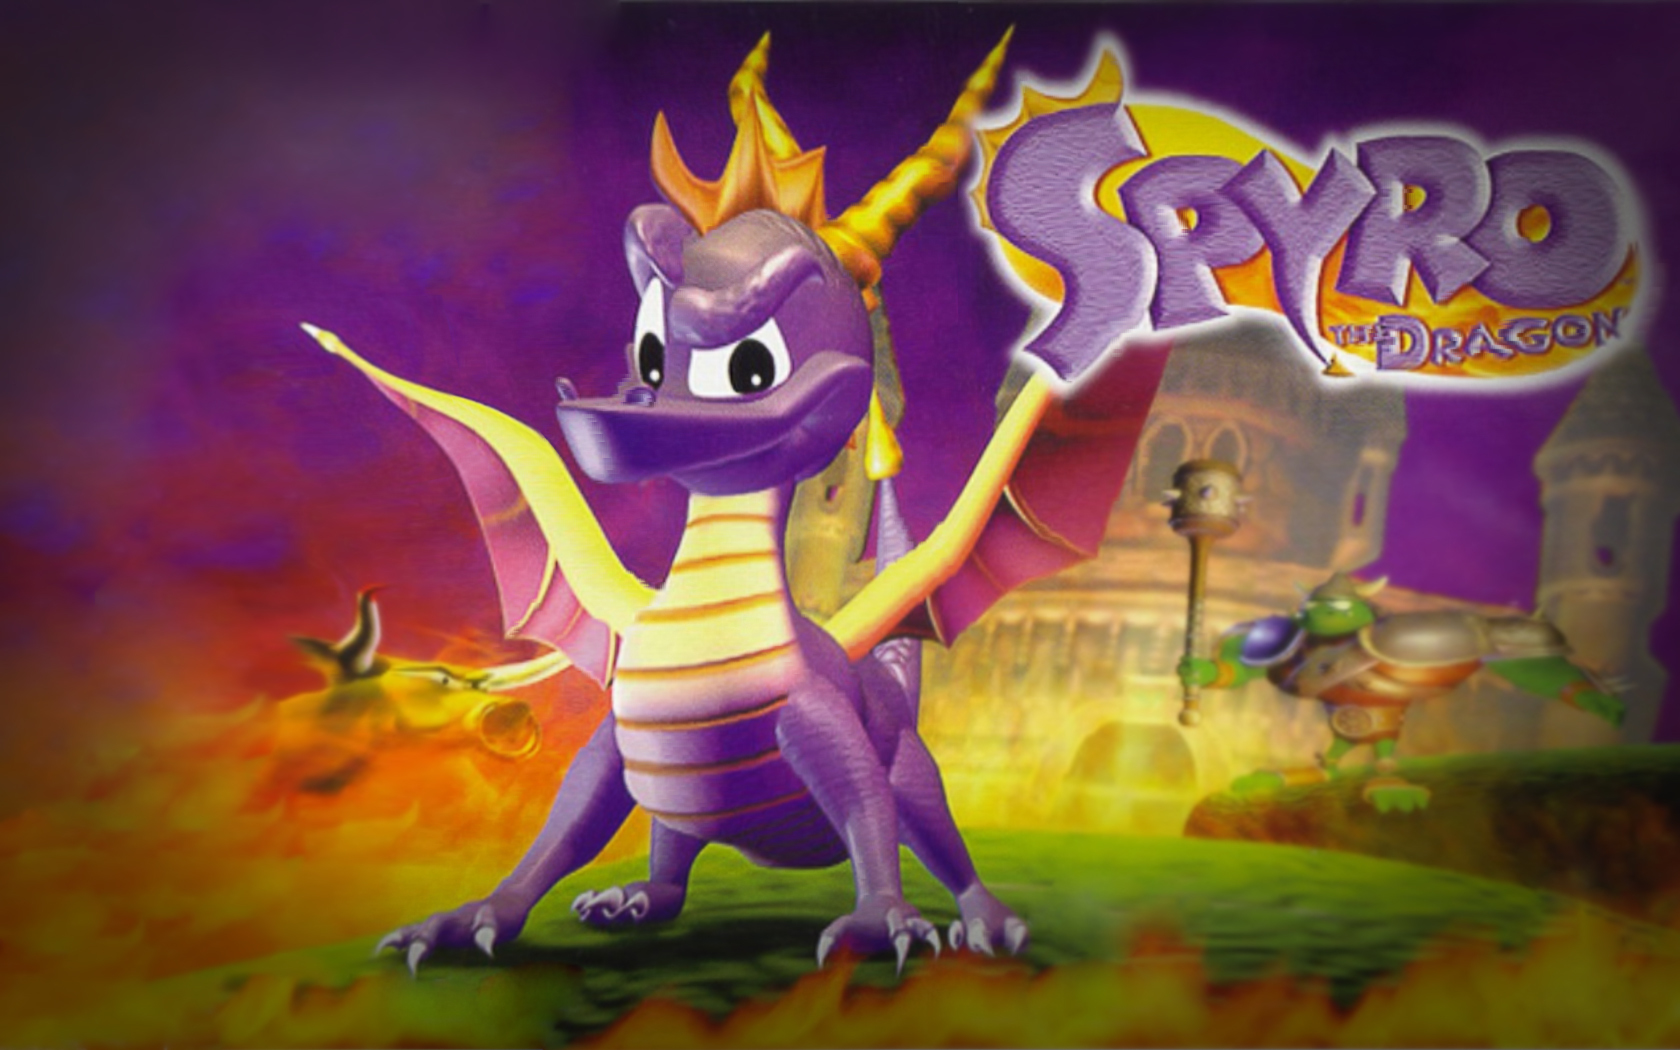 Spyro Images The Dragon Wallpaper HD And Background Photos